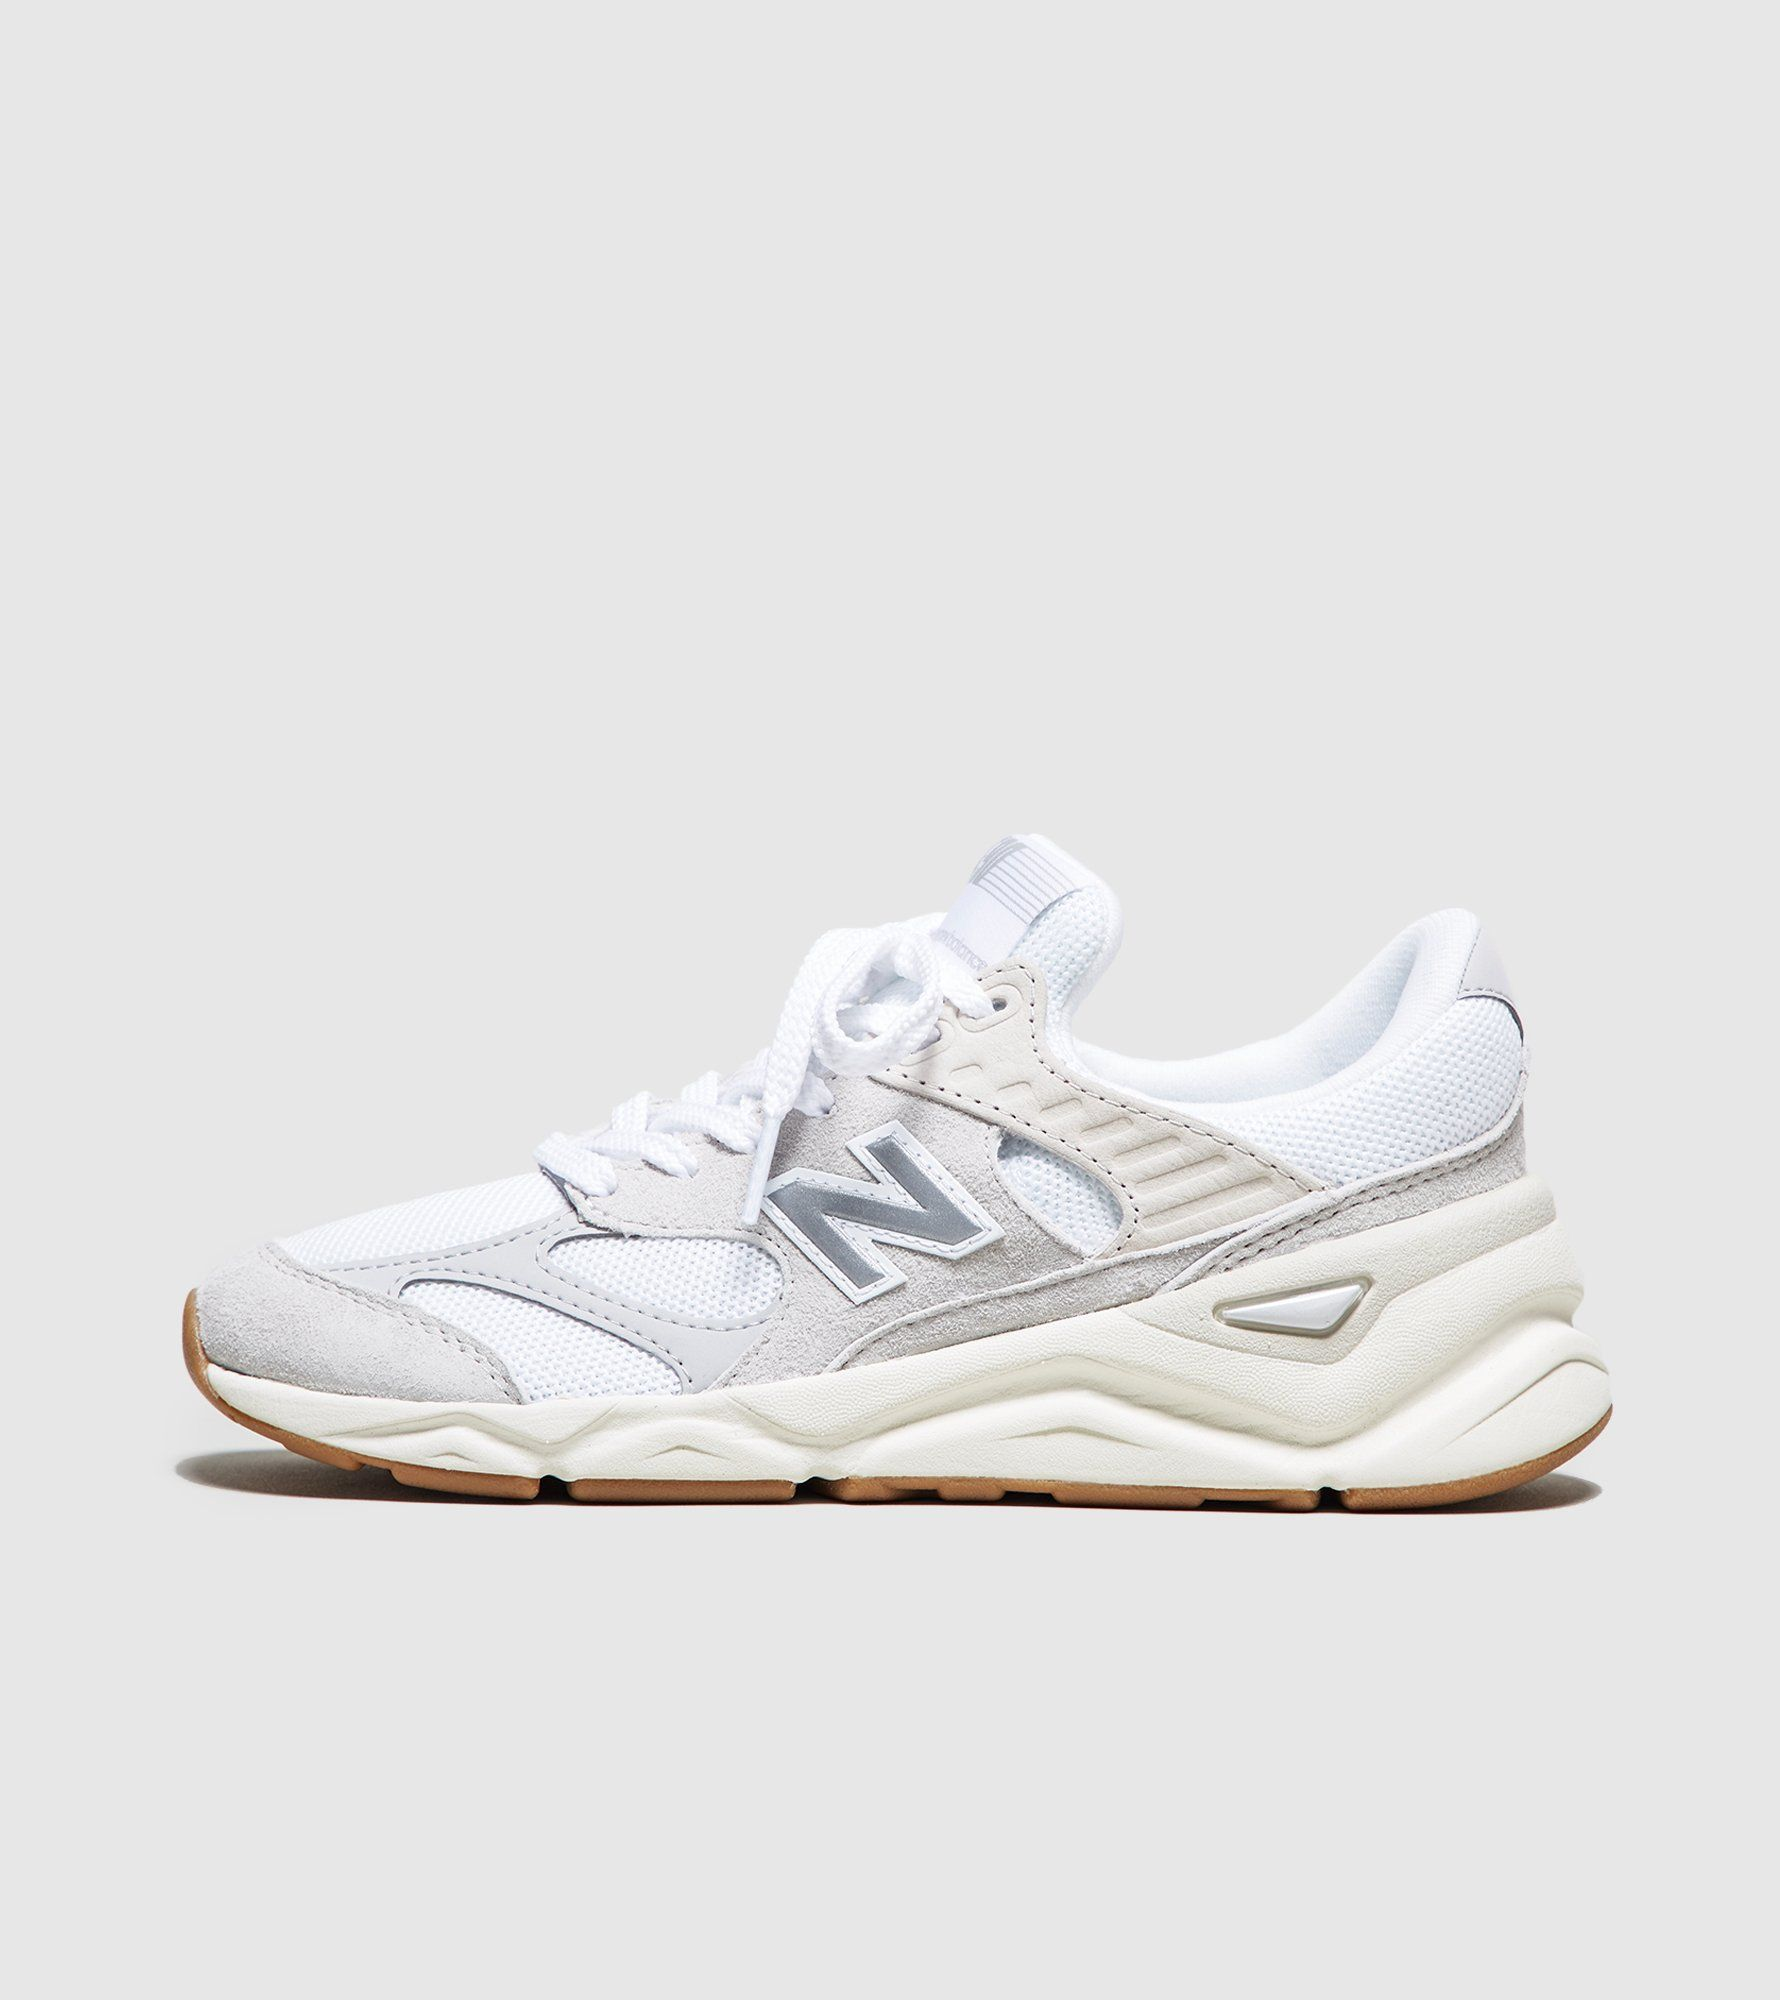 New Balance X90 RV1 Women's